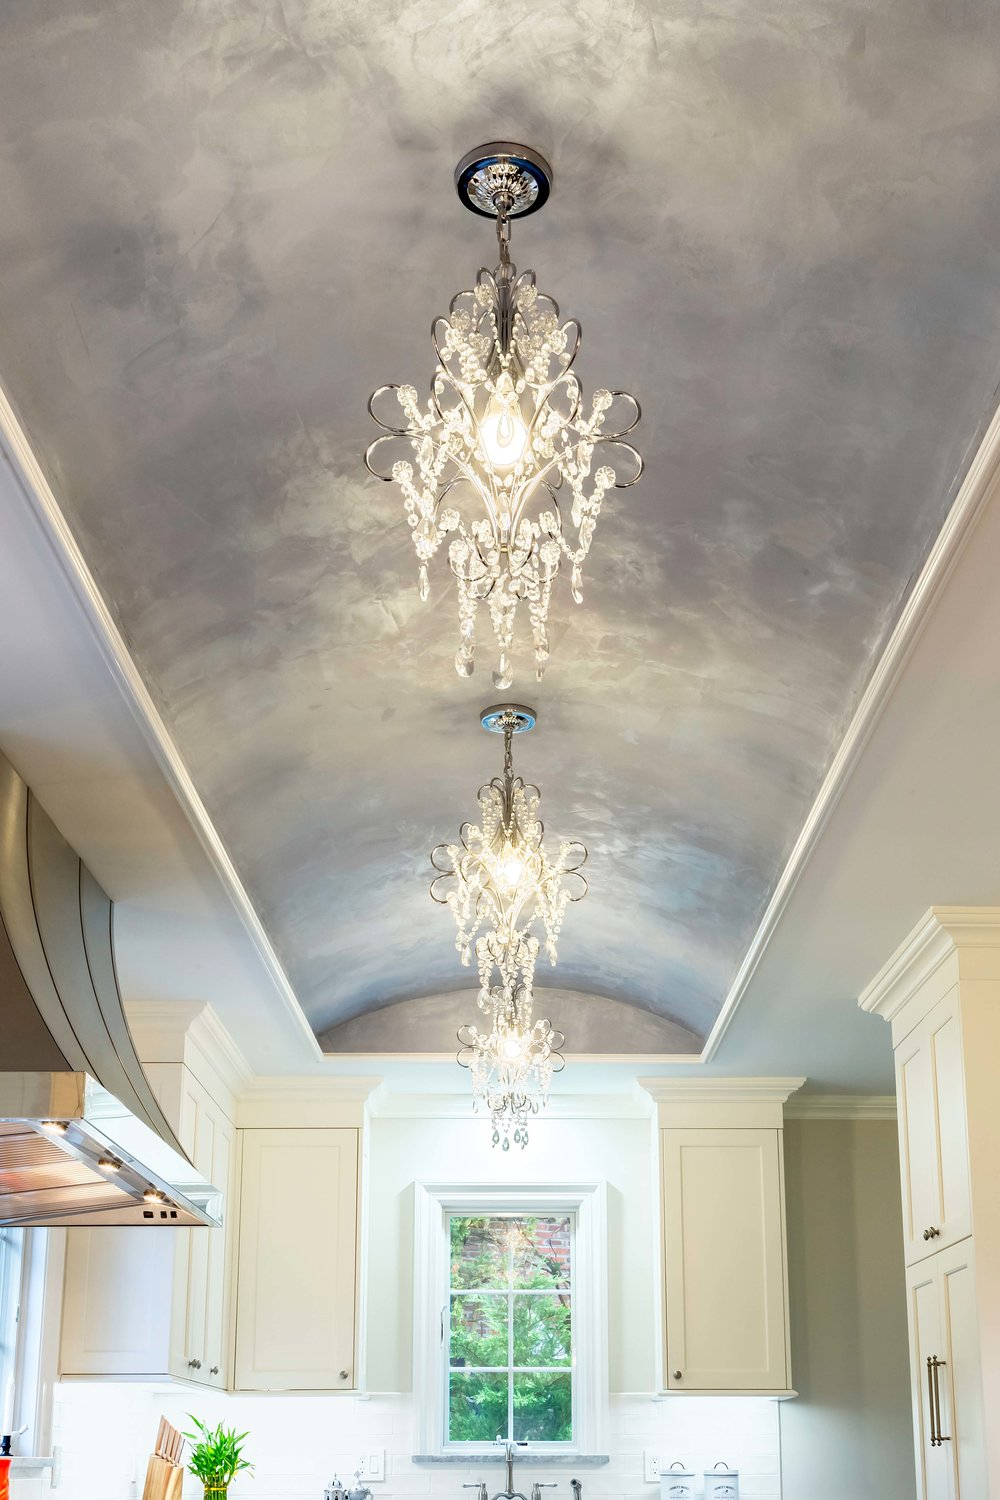 Vaunted ceiling with hanging chandeliers within a bright transitional style kitchen